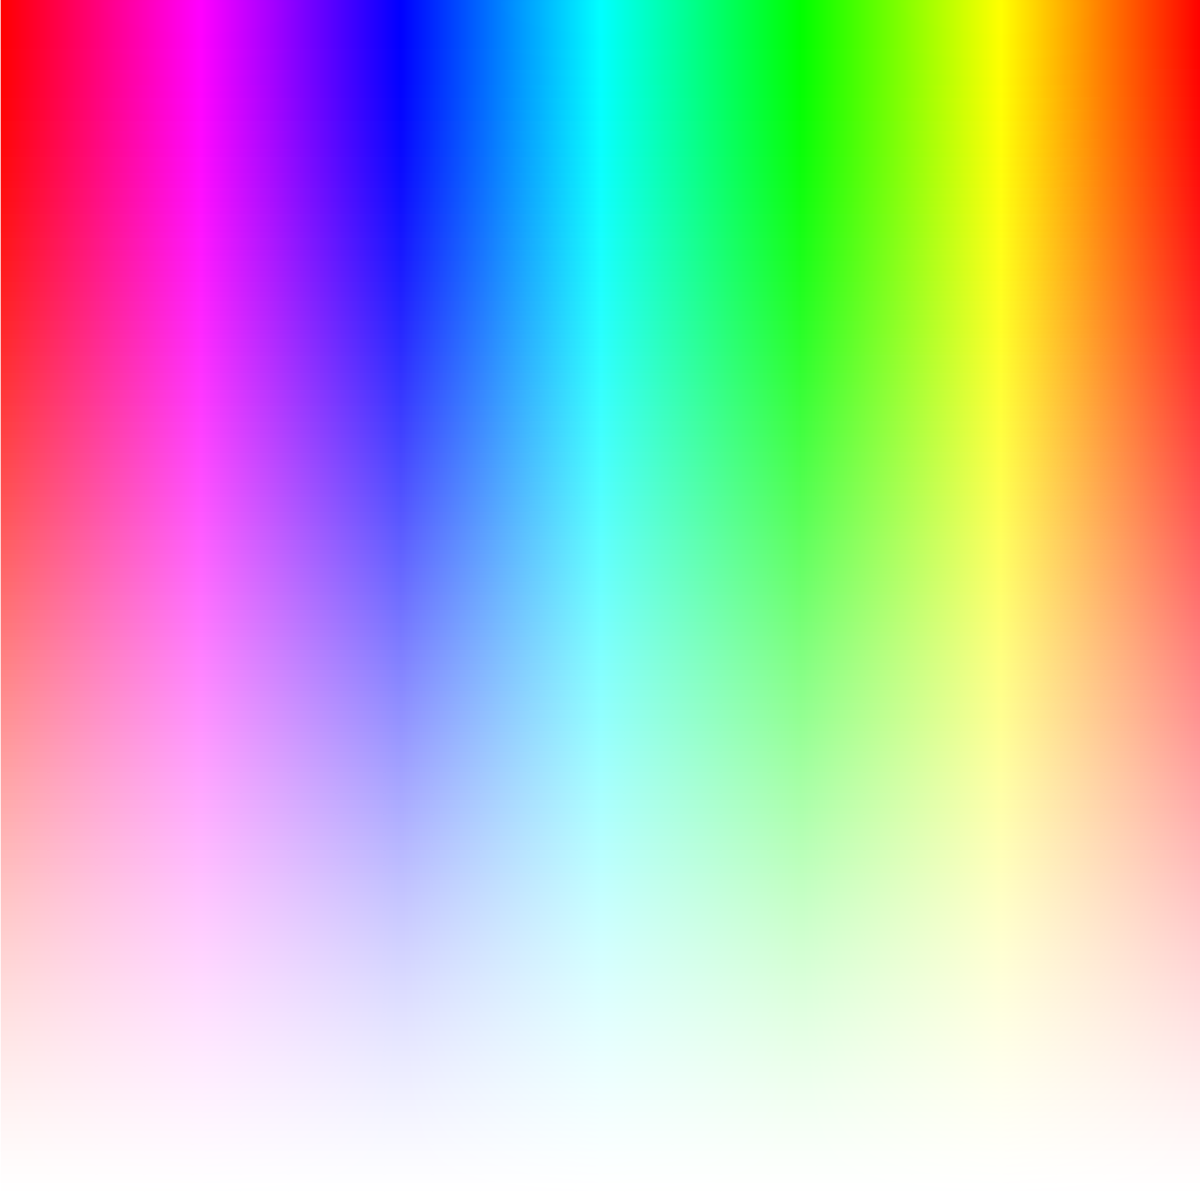 Rainbow gradient png. To alpha login